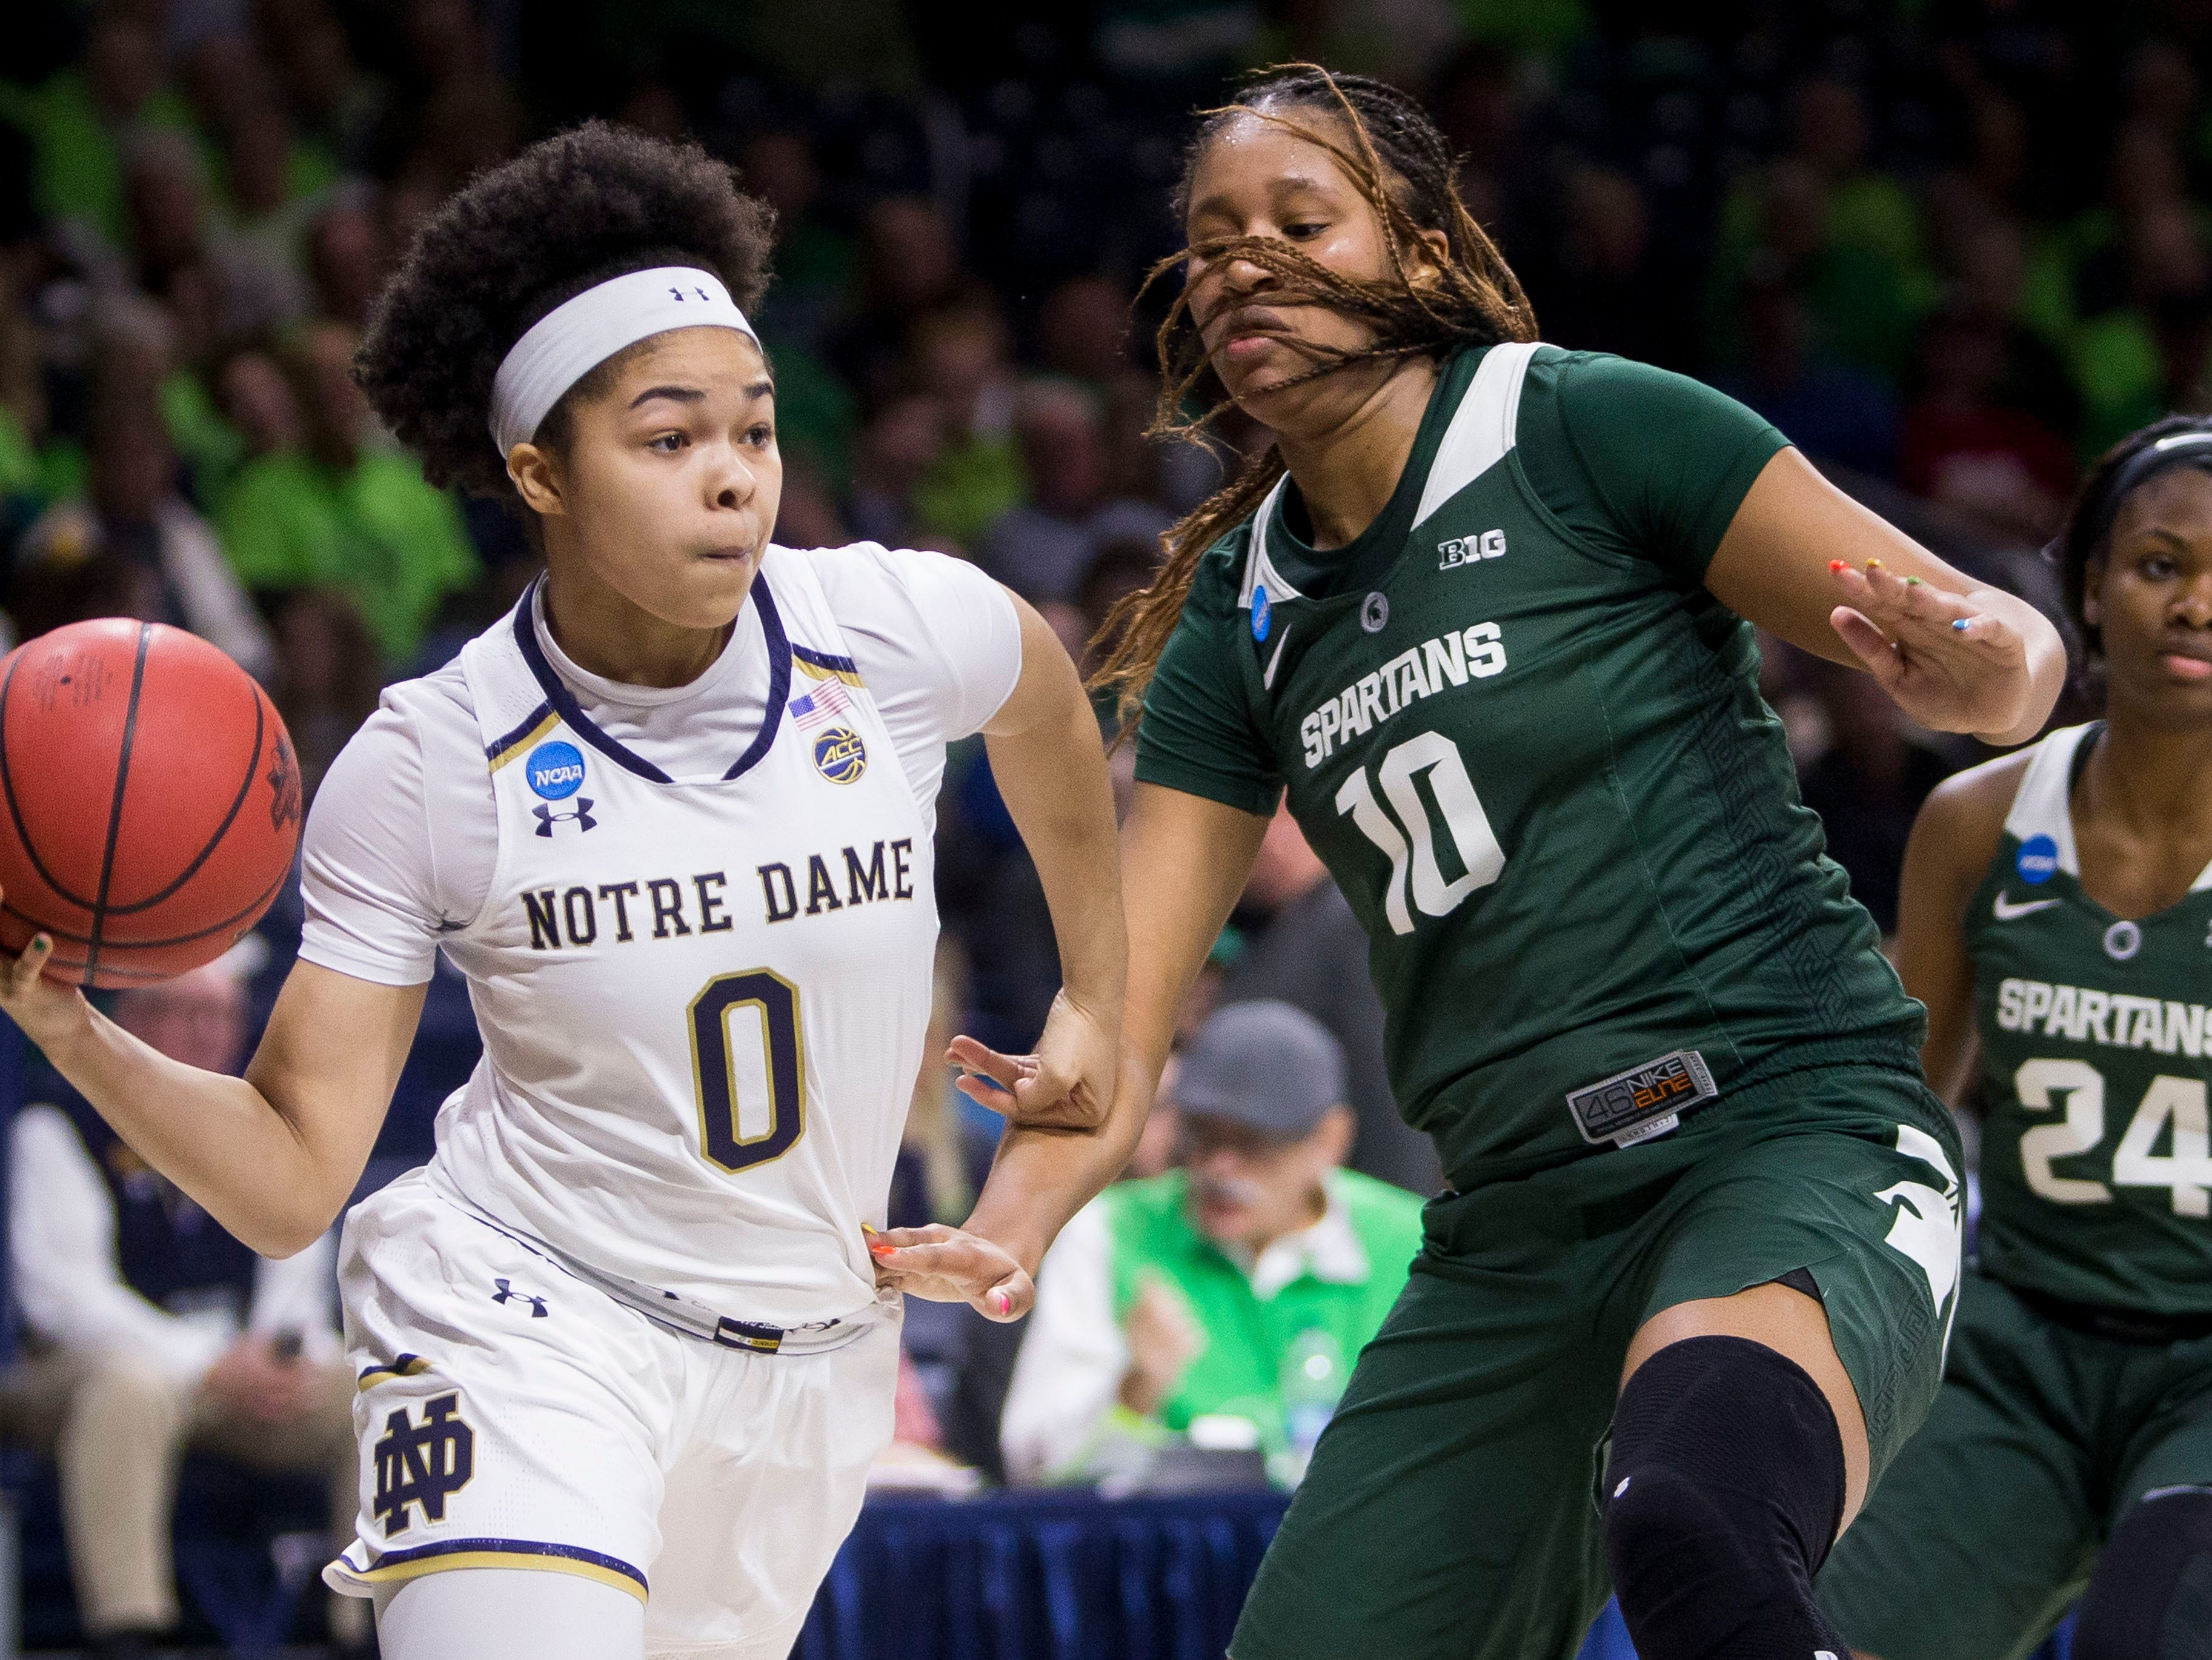 Notre Dame's Jordan Nixon (0) passes around Michigan State's Sidney Cooks (10) during a second-round game in the NCAA women's college basketball tournament in South Bend, Ind., Monday, March 25, 2019. (AP Photo/Robert Franklin)